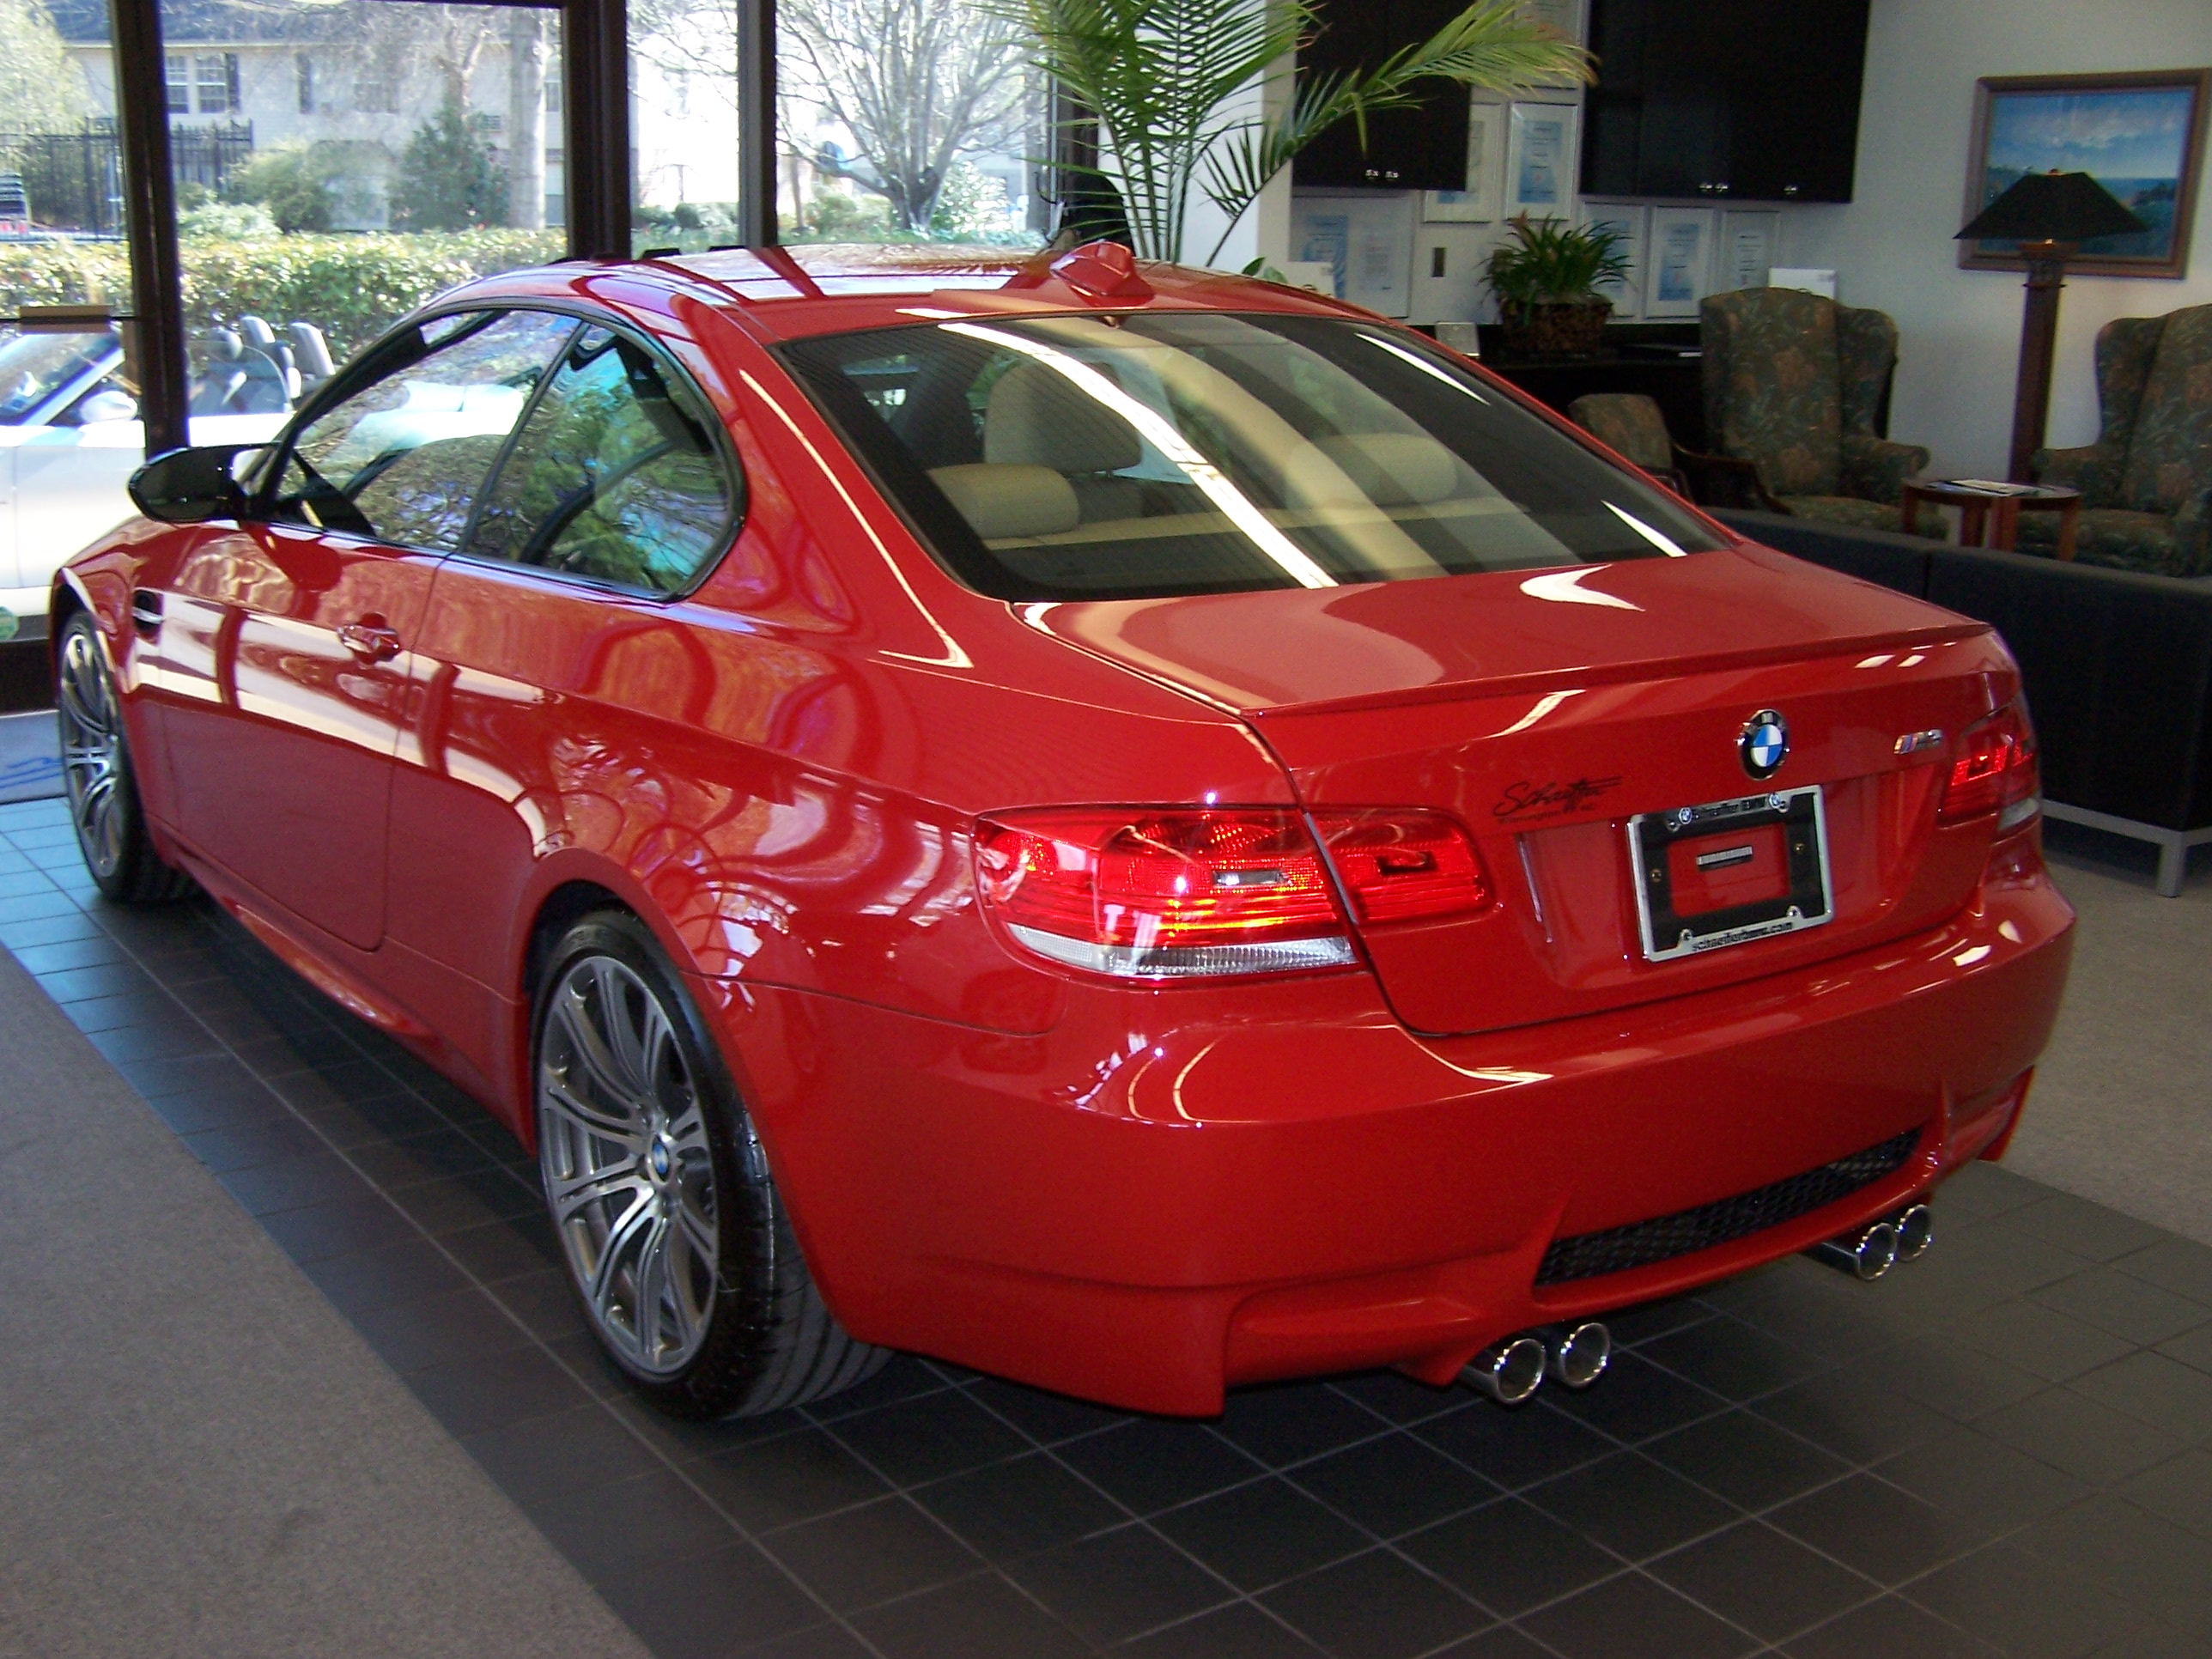 2008 BMW E92 M3 available at the U S dealerships